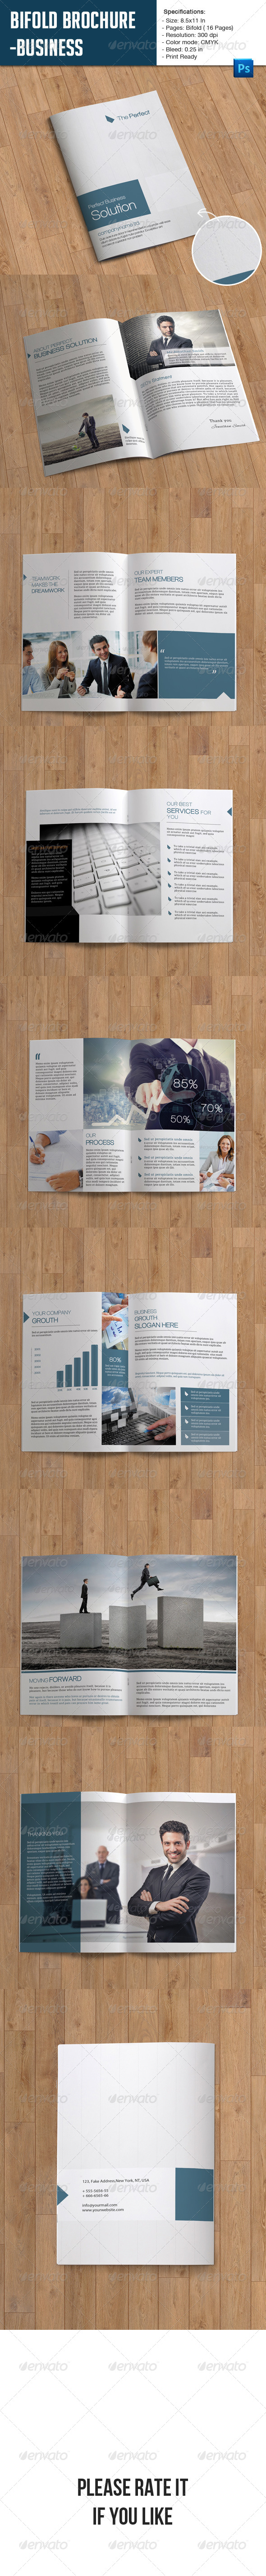 GraphicRiver Bifold Brochure-Business 7185408